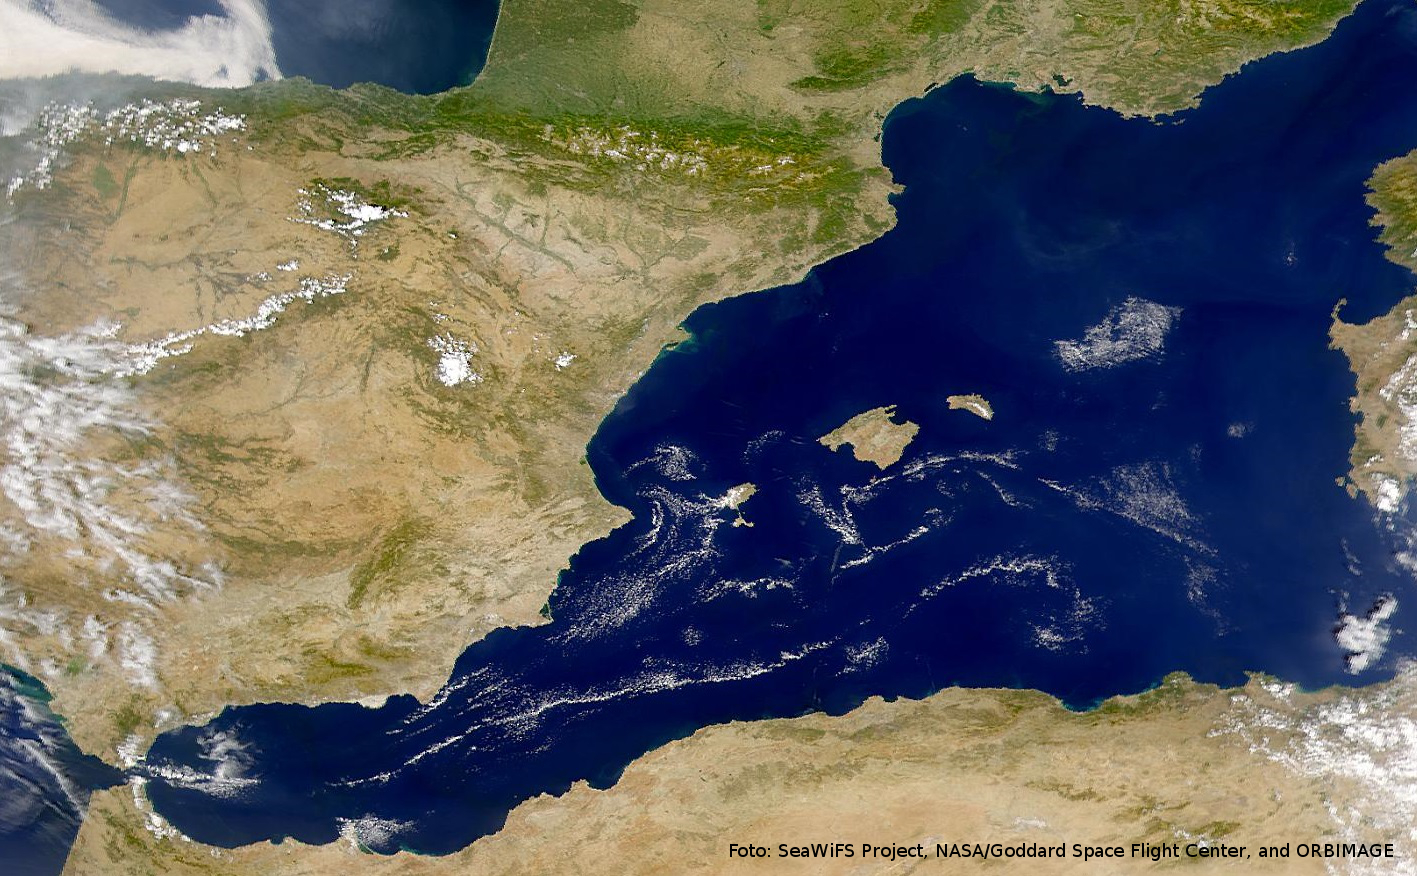 Imagen satelital del Mediterráneo Occidental. Foto: SeaWiFS Project, NASA/Goddard Space Flight Center, and ORBIMAGE